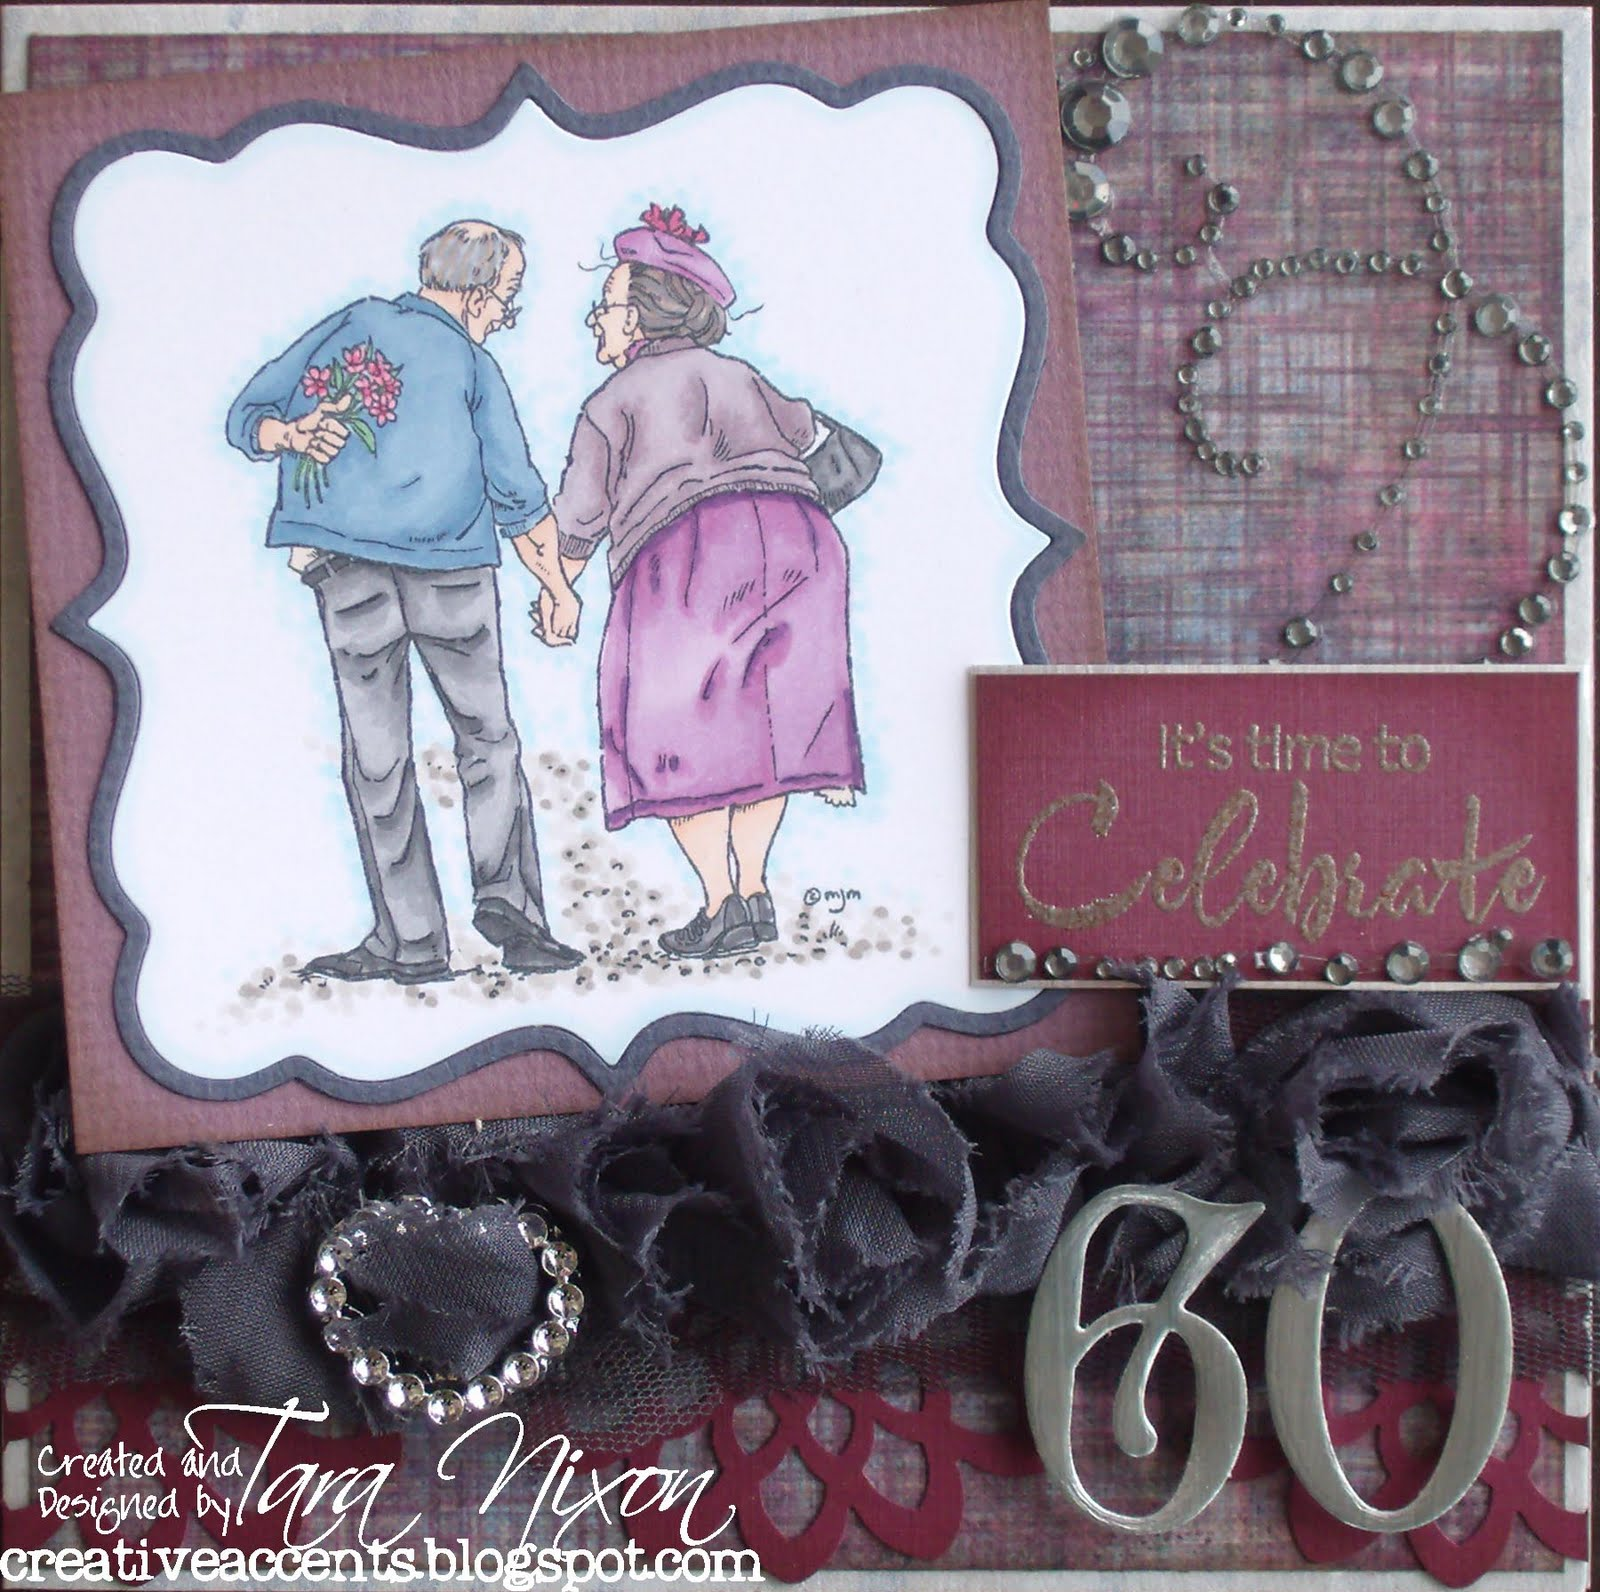 60th wedding anniversary quotes [2] - Quotes links